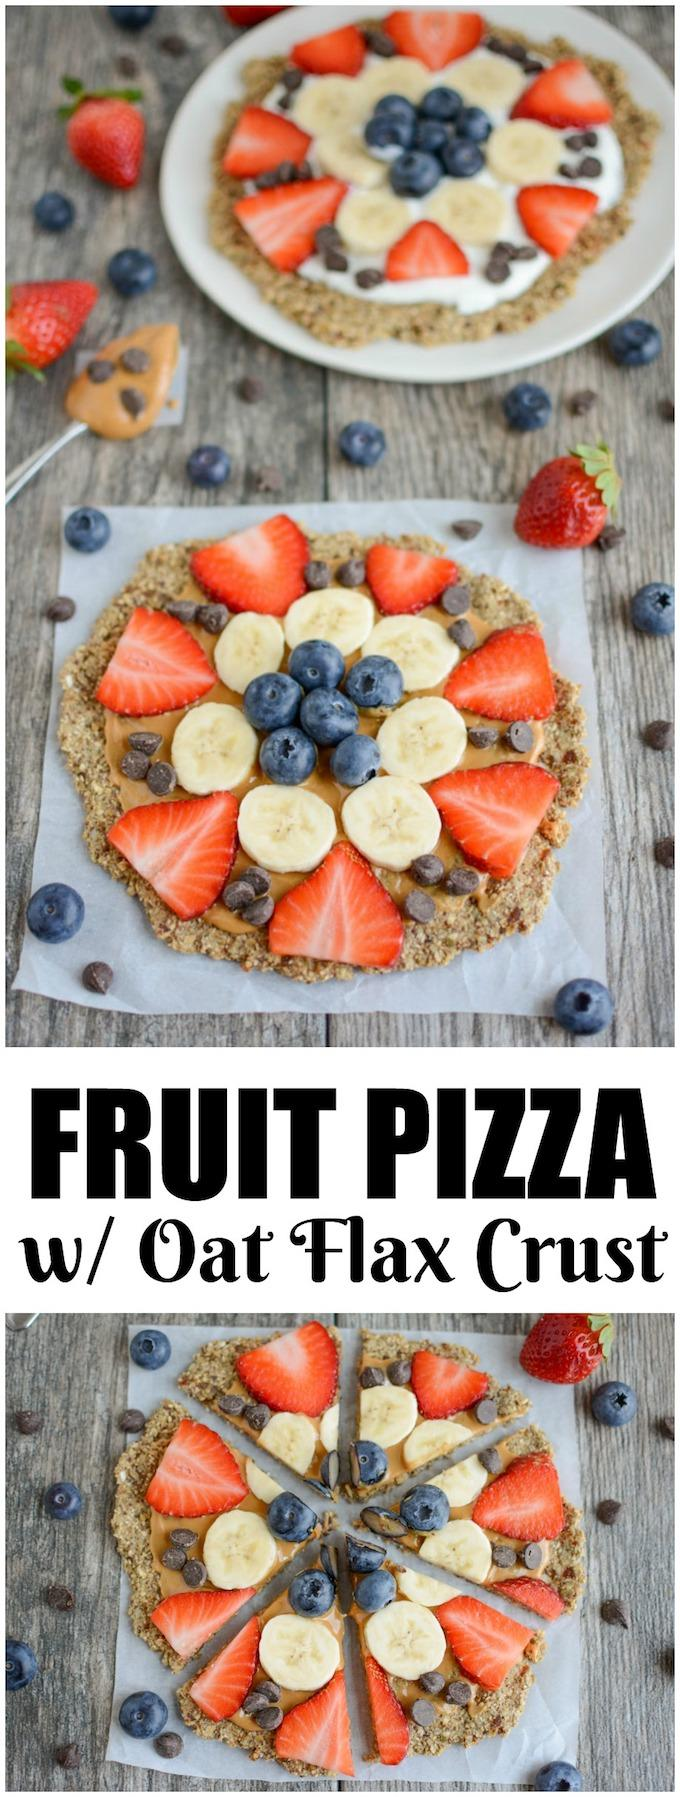 This Fruit Pizza with Oatmeal Flax Crust is packed with fiber and so easy to make. Let everyone top this kid-friendly breakfast or snack recipe with their favorite nut butter, yogurt and fruit!